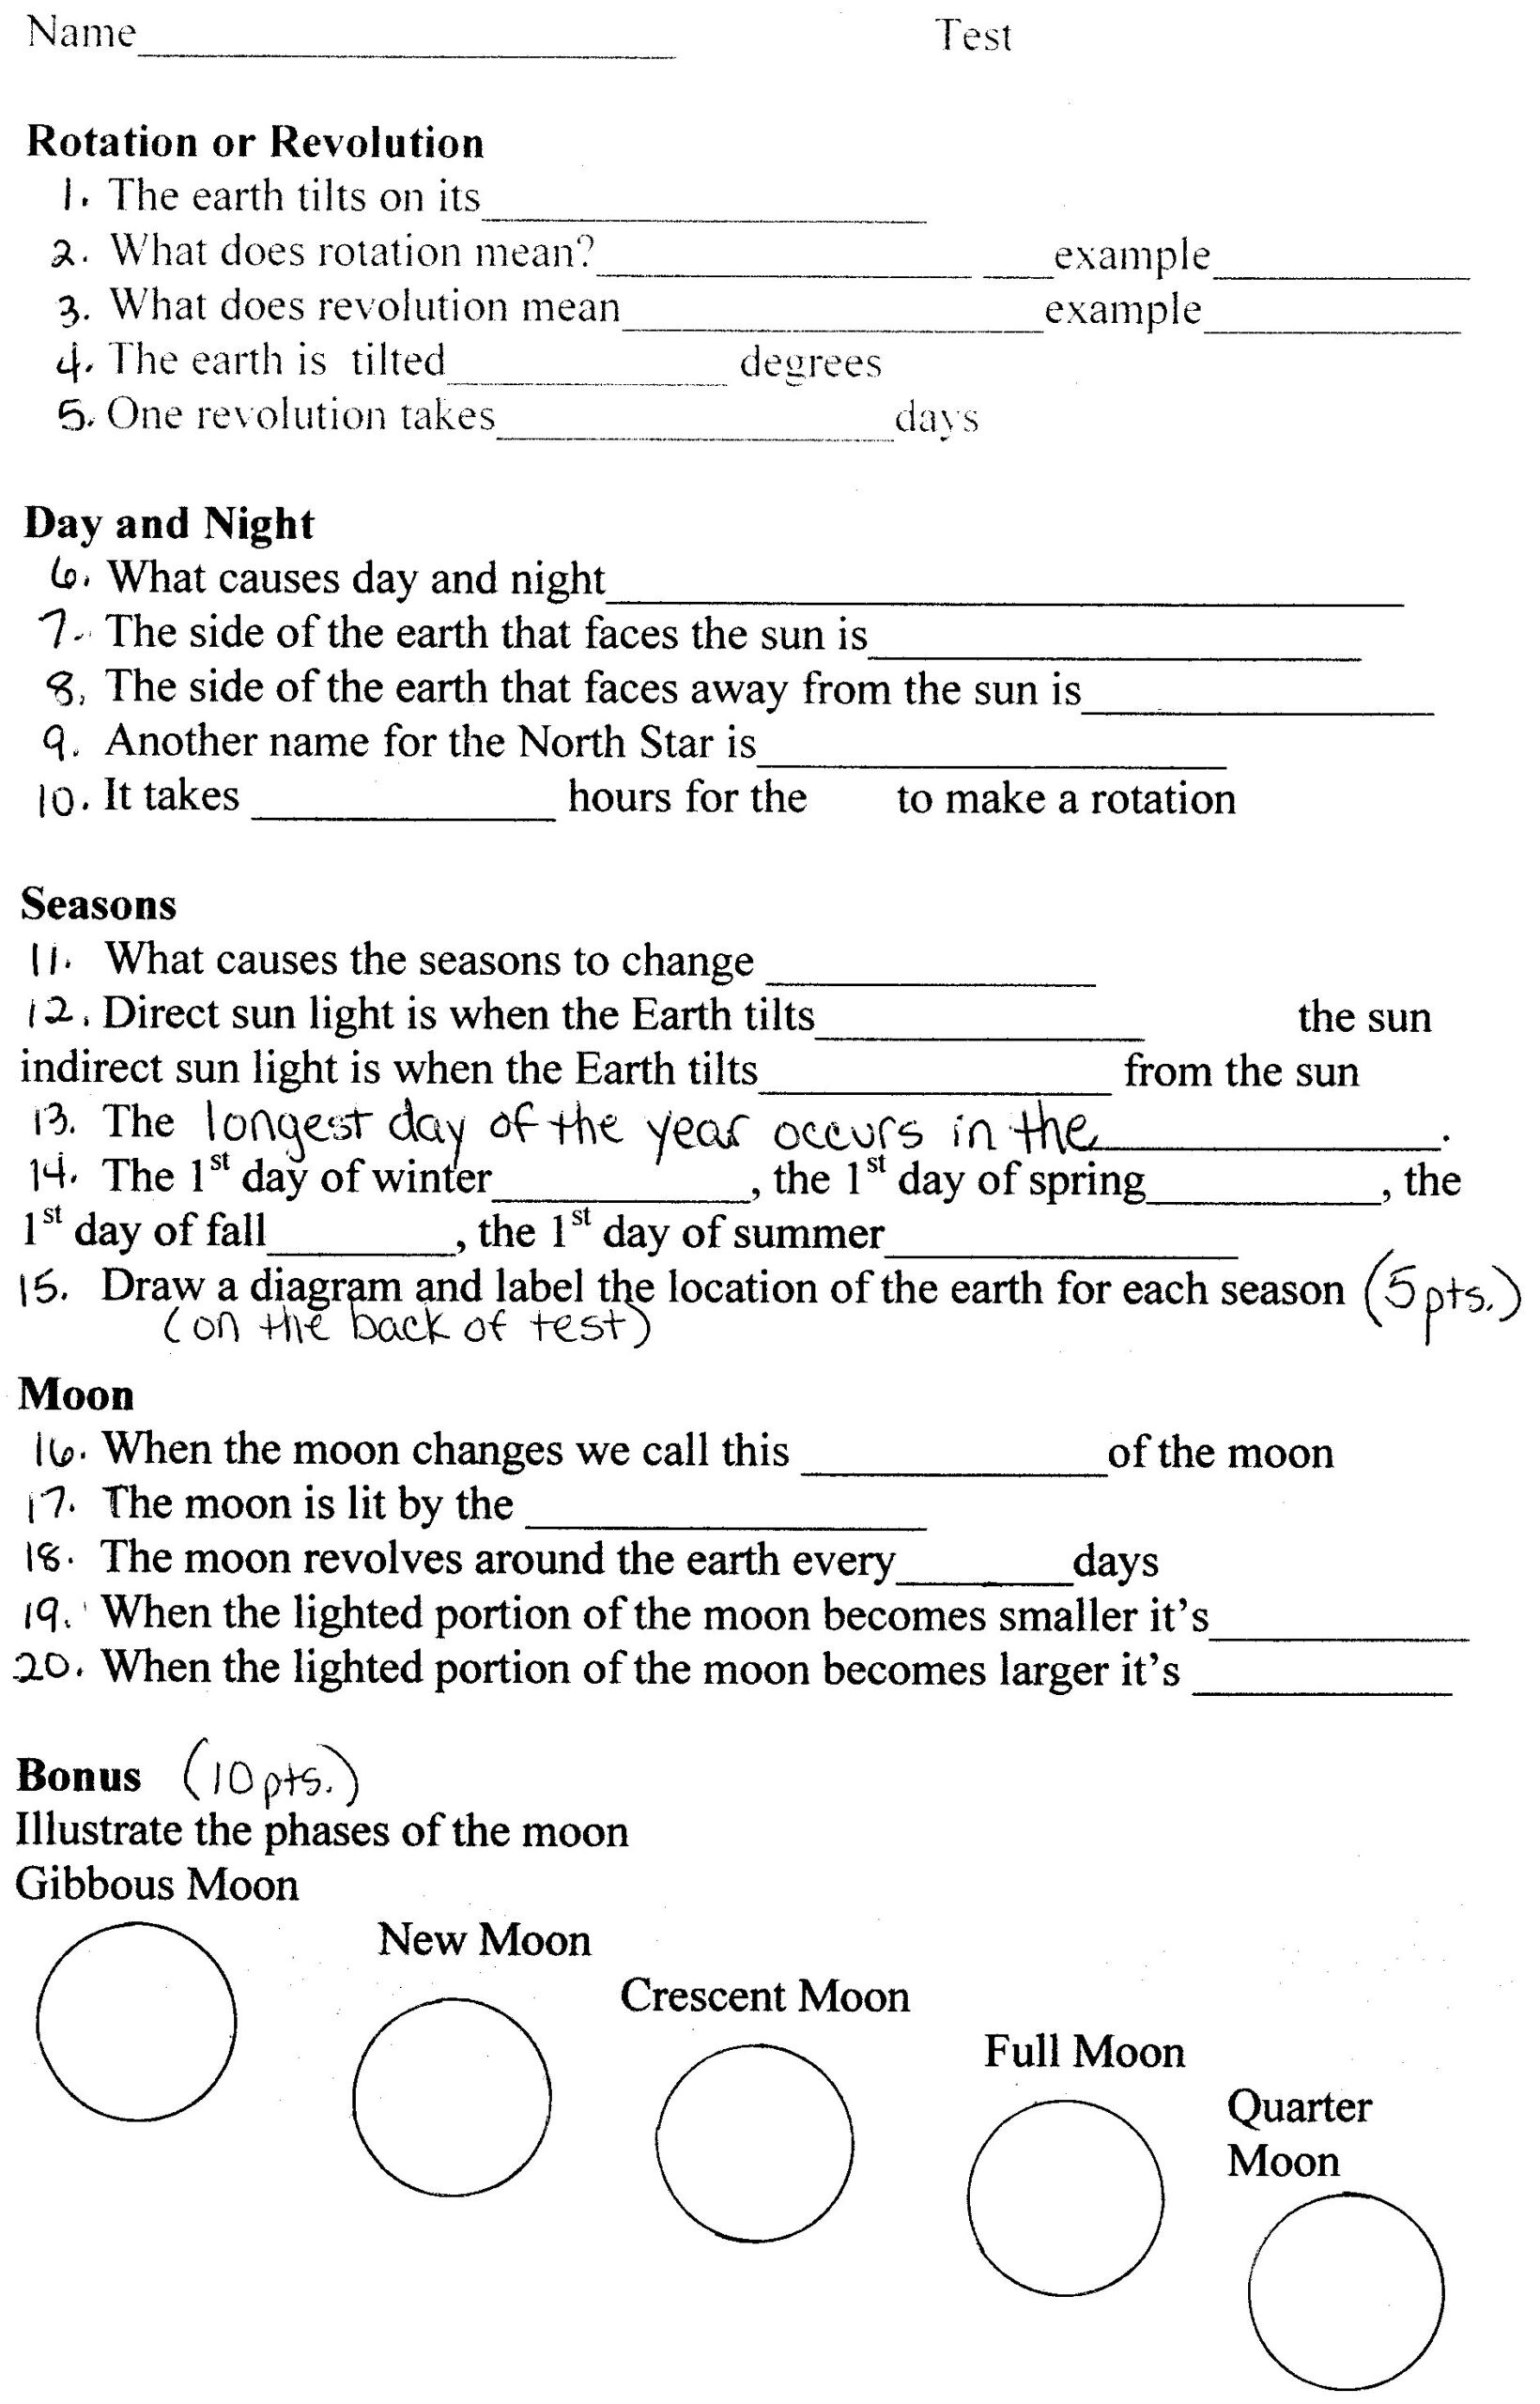 Rotations Worksheet 8th Grade Earth Science astronomy Worksheets astronomytest Practice